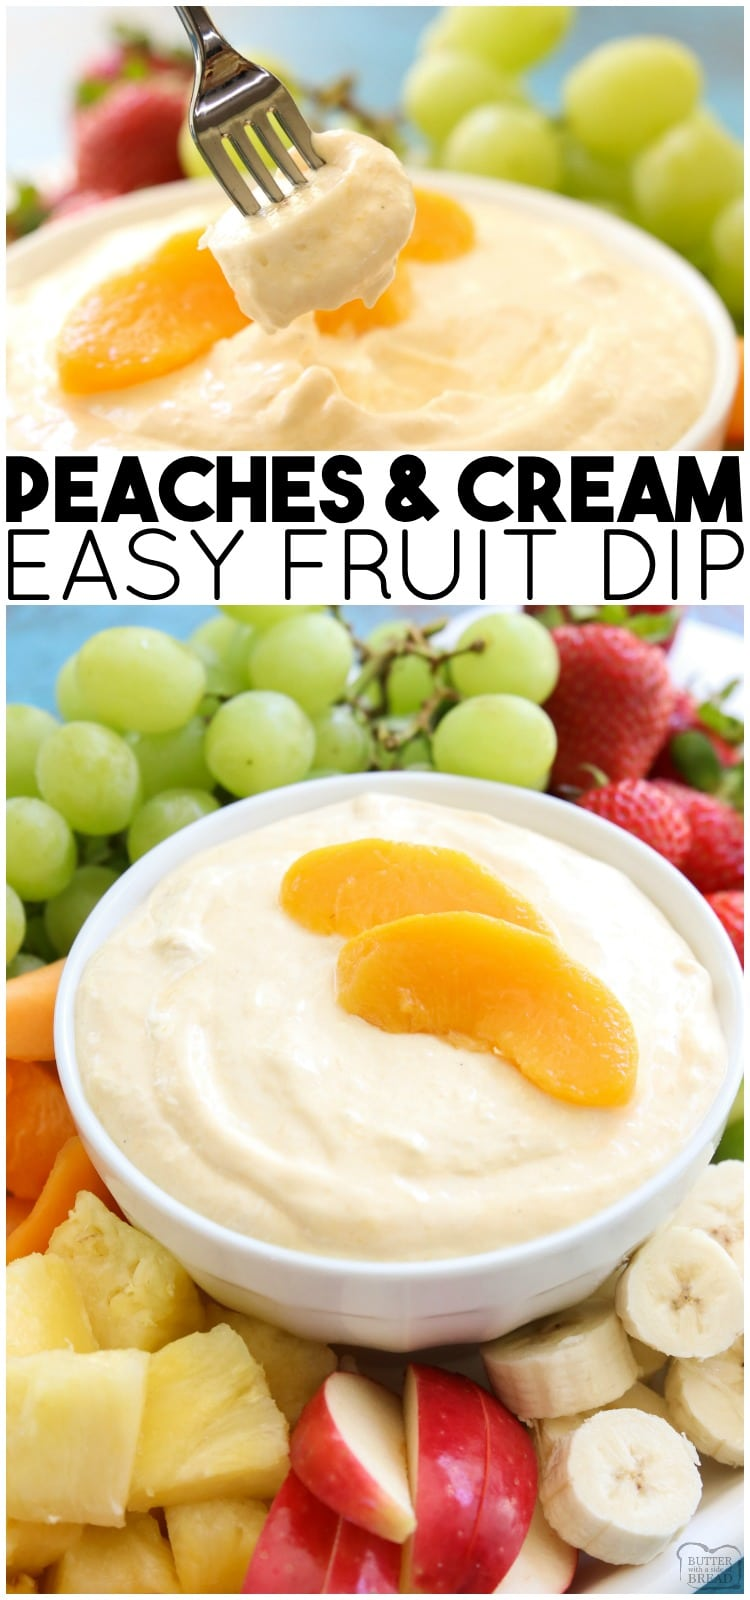 Peaches and Cream Fruit Dip is a sweet cream cheese fruit dip perfect for any occasion! This 5 ingredient peaches and creamrecipe is easy, delicious, and perfect served with fresh fruit. #fruit #peach #peachesandcream #fruitdip #easyrecipe from BUTTER WITH A SIDE OF BREAD